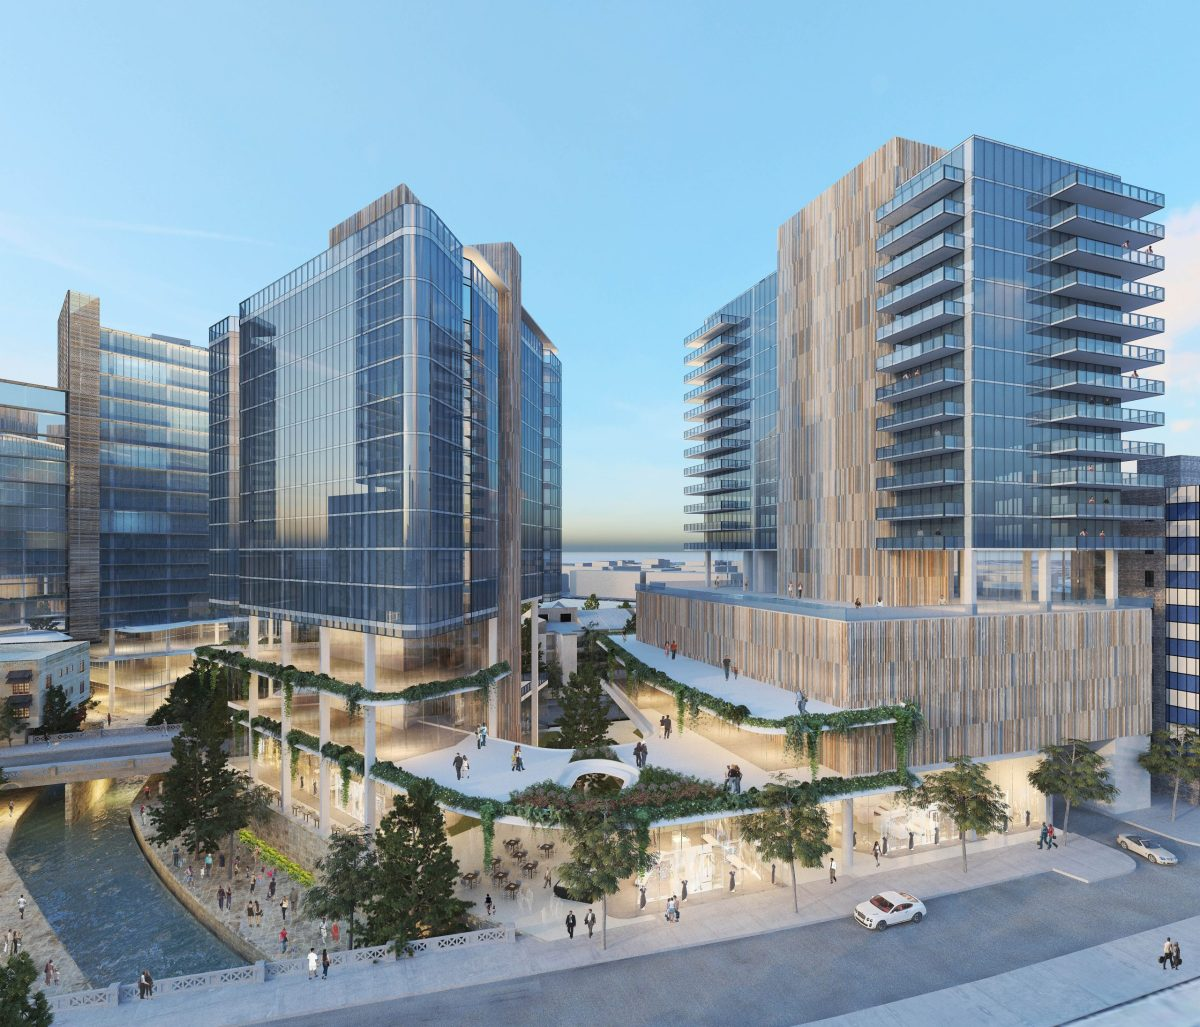 A rendering shows a view of the Dream Hotel project looking north from Martin Street.